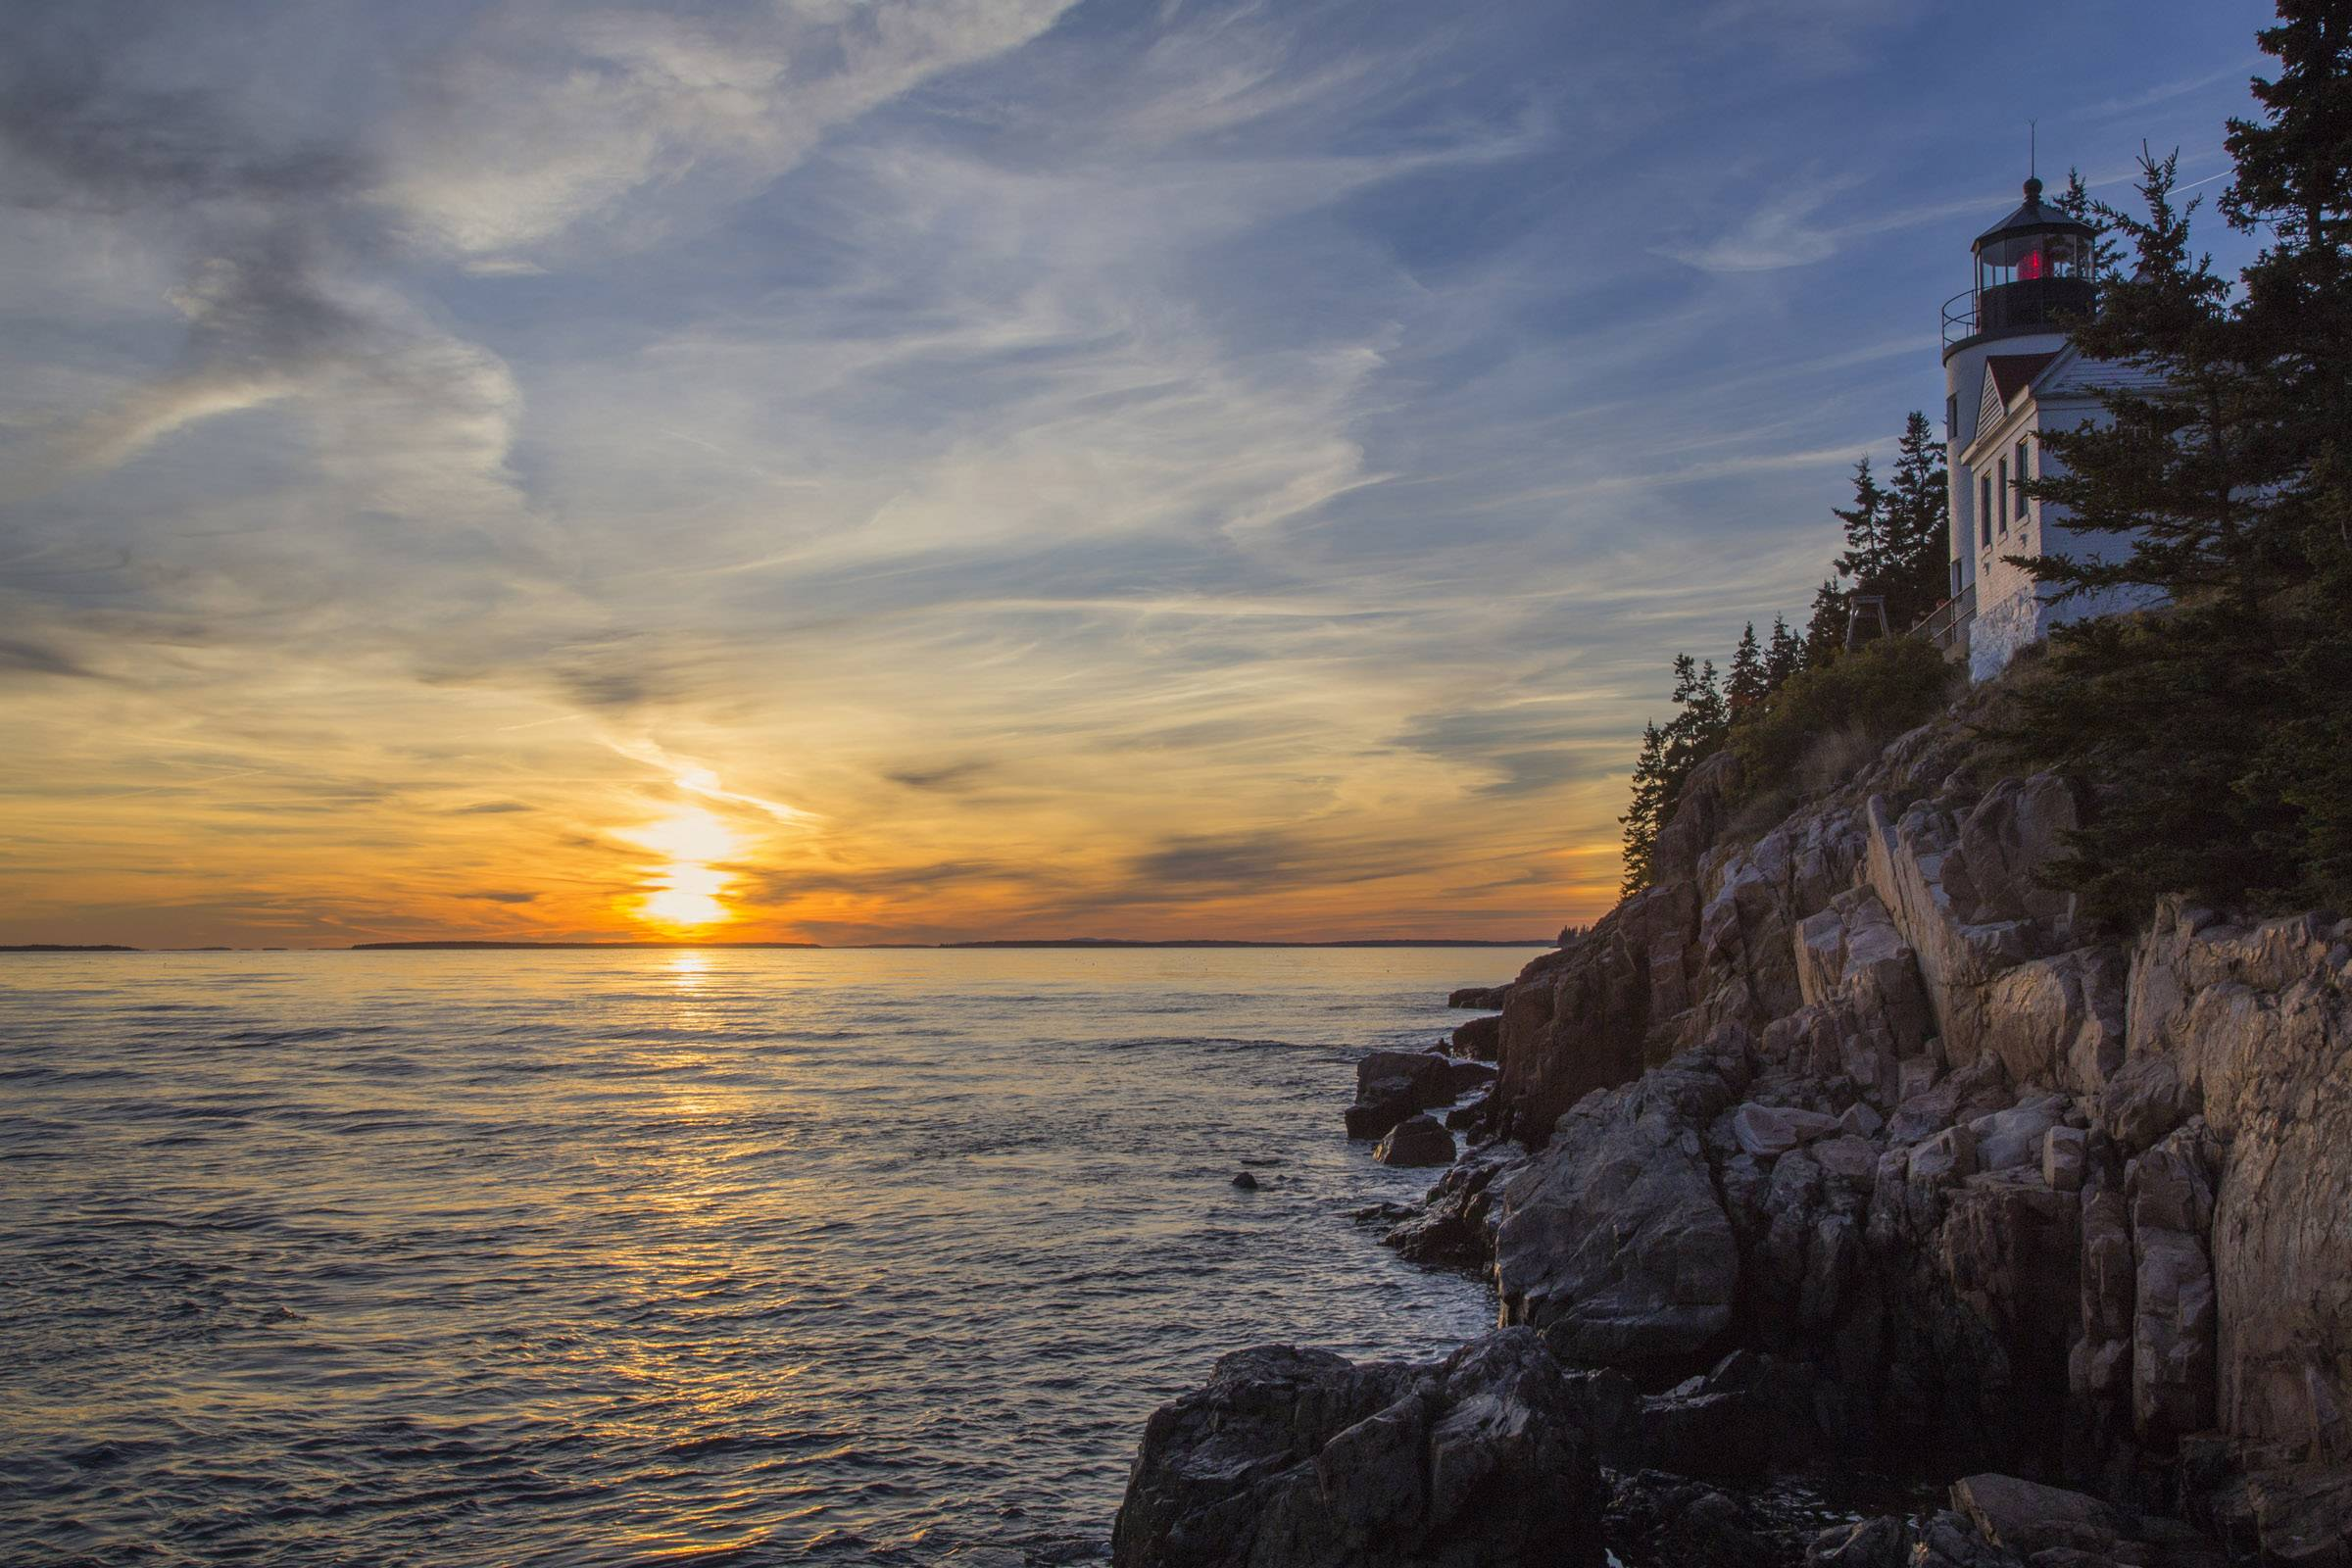 The sun sets at Bass Harbor Lighthouse in Acadia National Park just prior to sunset on Sunday, October 4. The lighthouse is a popular tourist attraction.